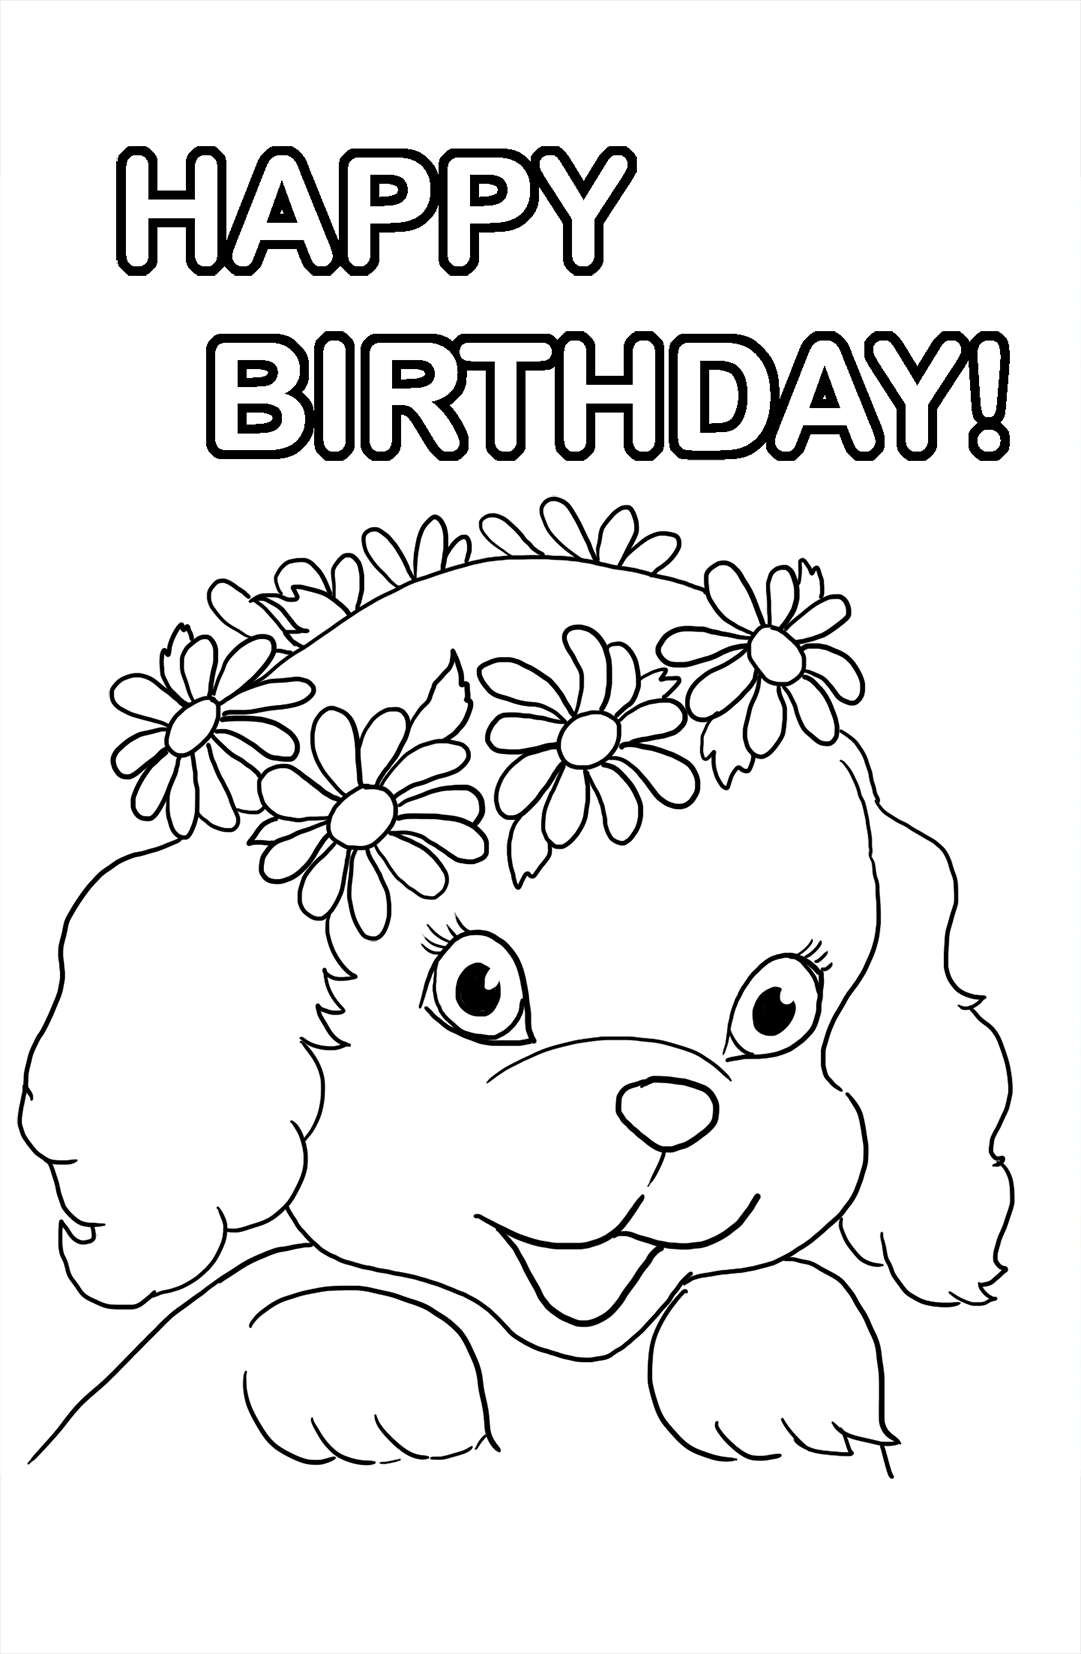 Birthday Girl Coloring Pages - Coloring Home